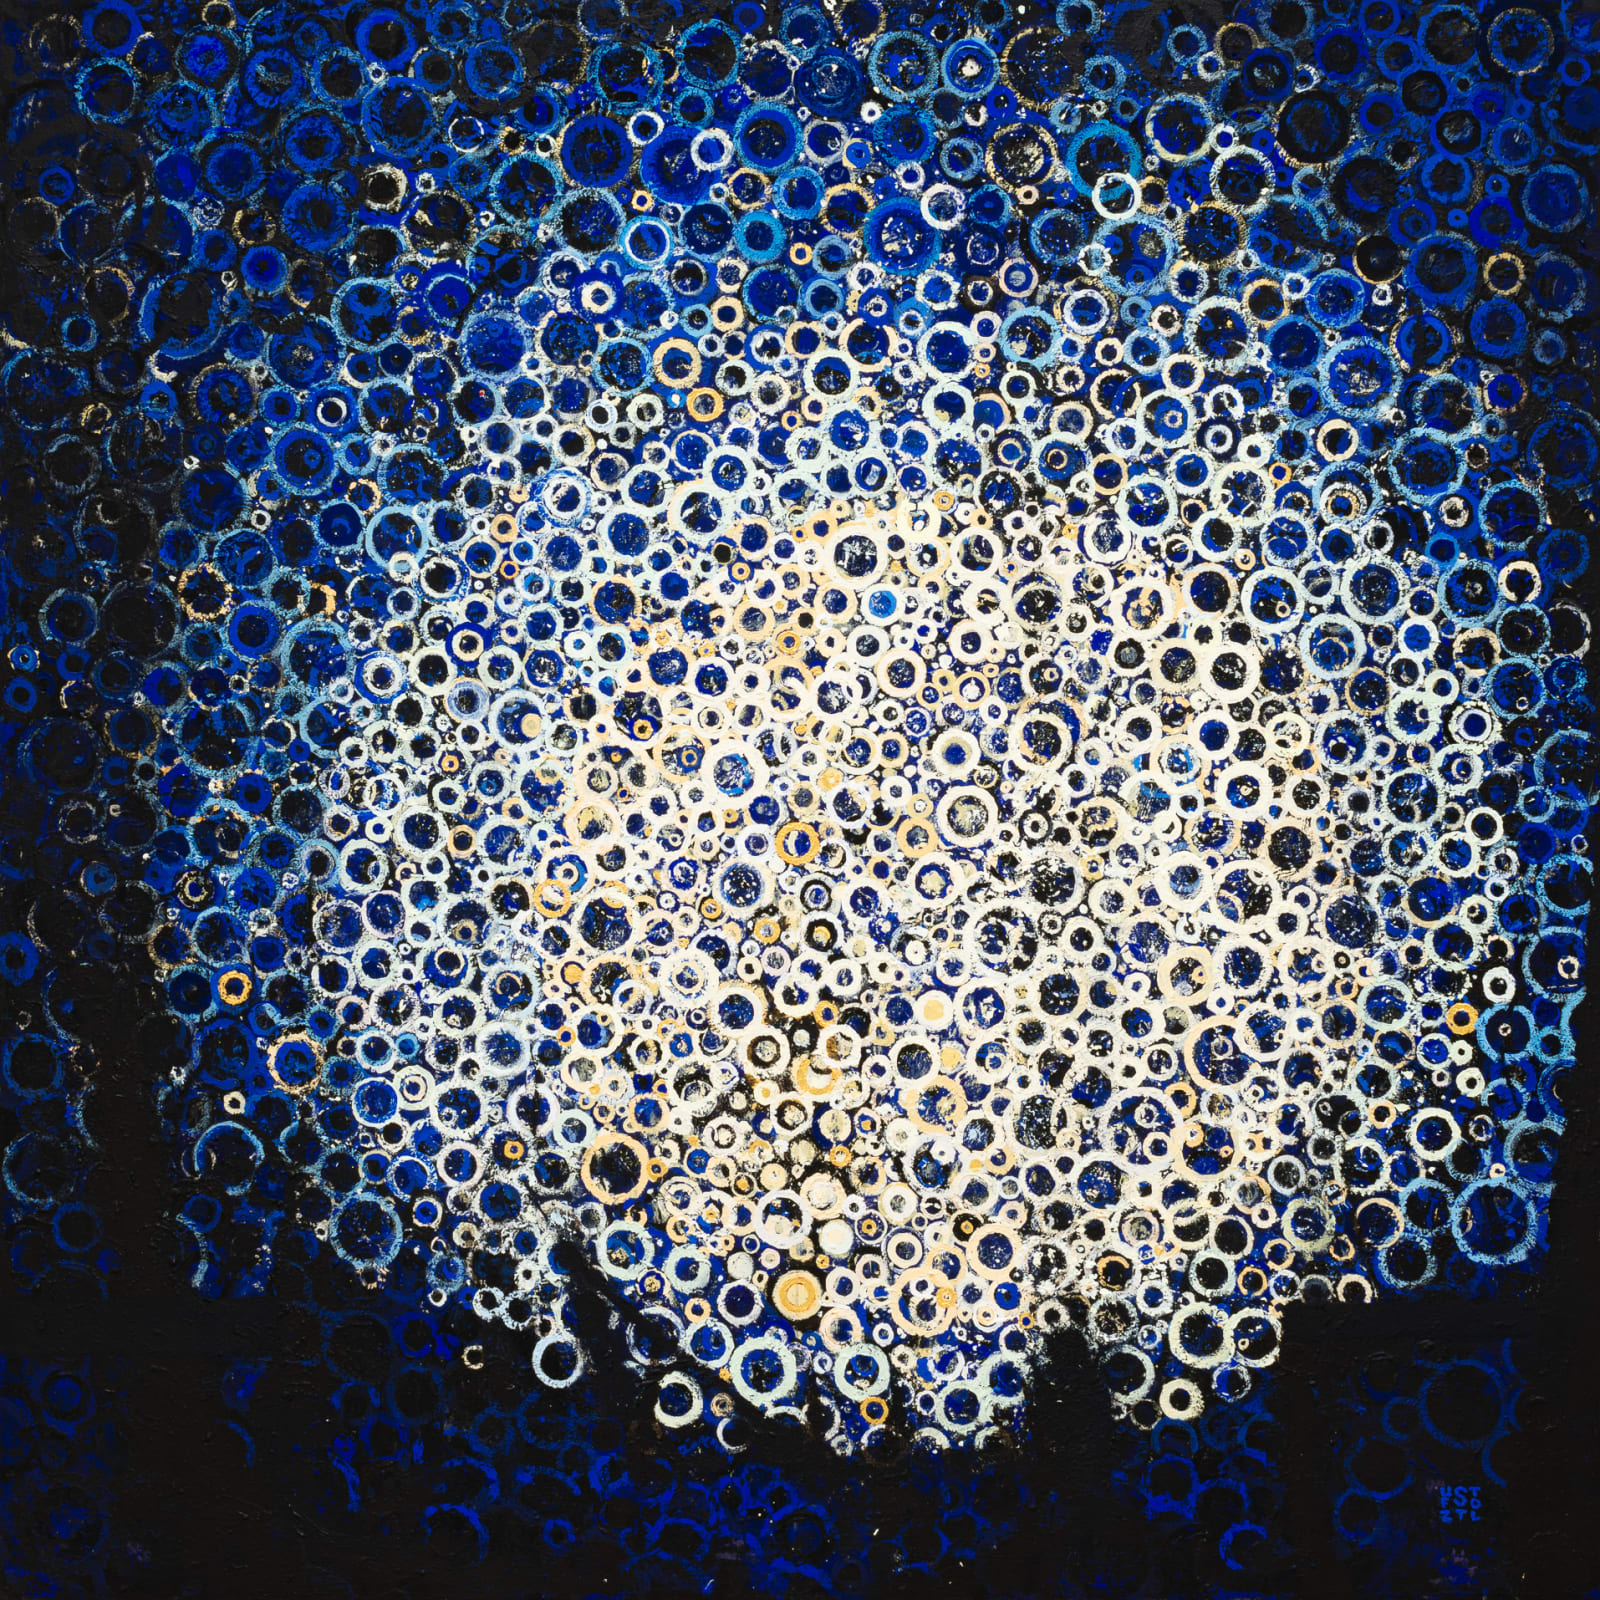 Randall Stoltzfus  Moonrise, 2019  Acrylic dispersion on polymer canvas  48 x 48 in